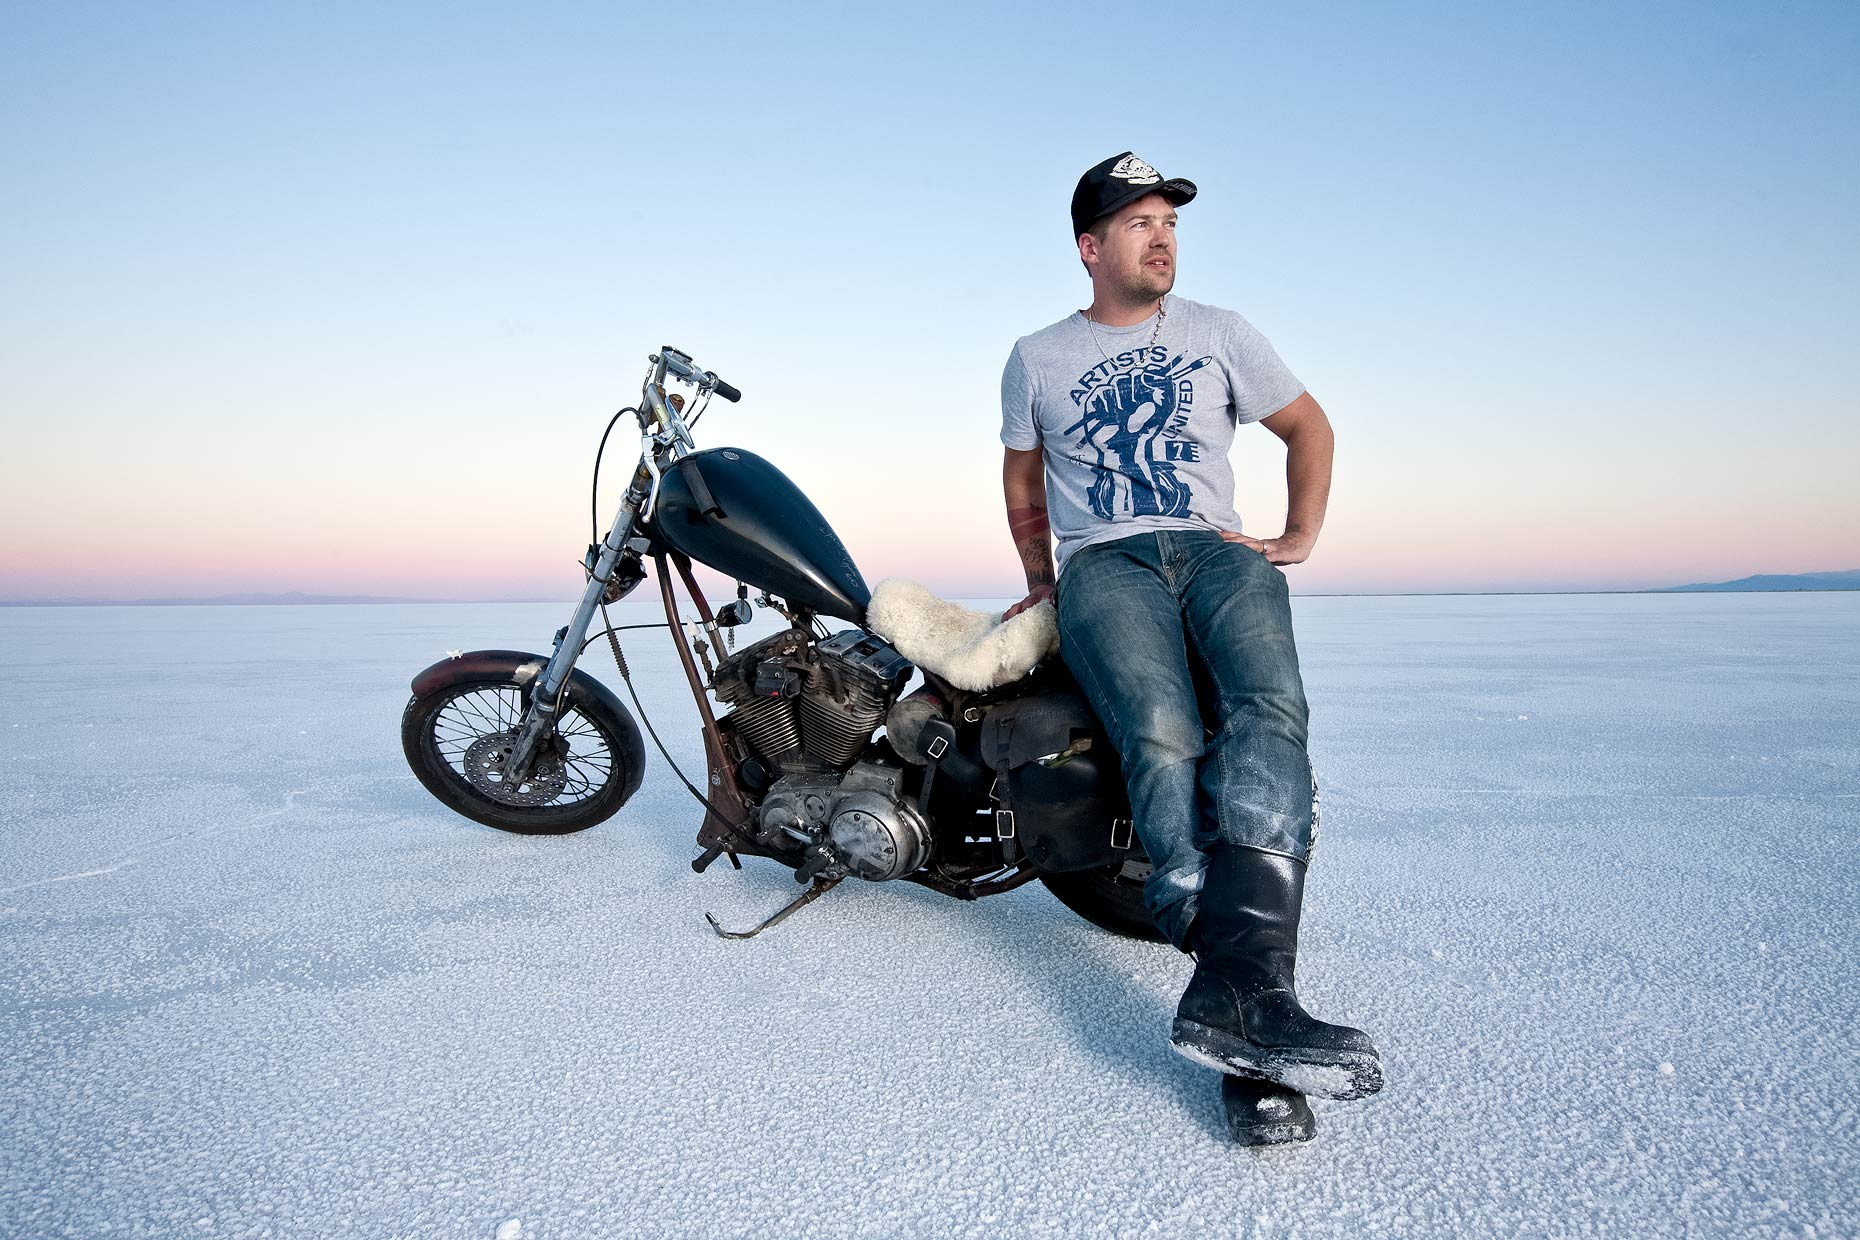 Sean-Gilligan-People-Moto-Chopper-Bonnevile-Salt-Flats.jpg